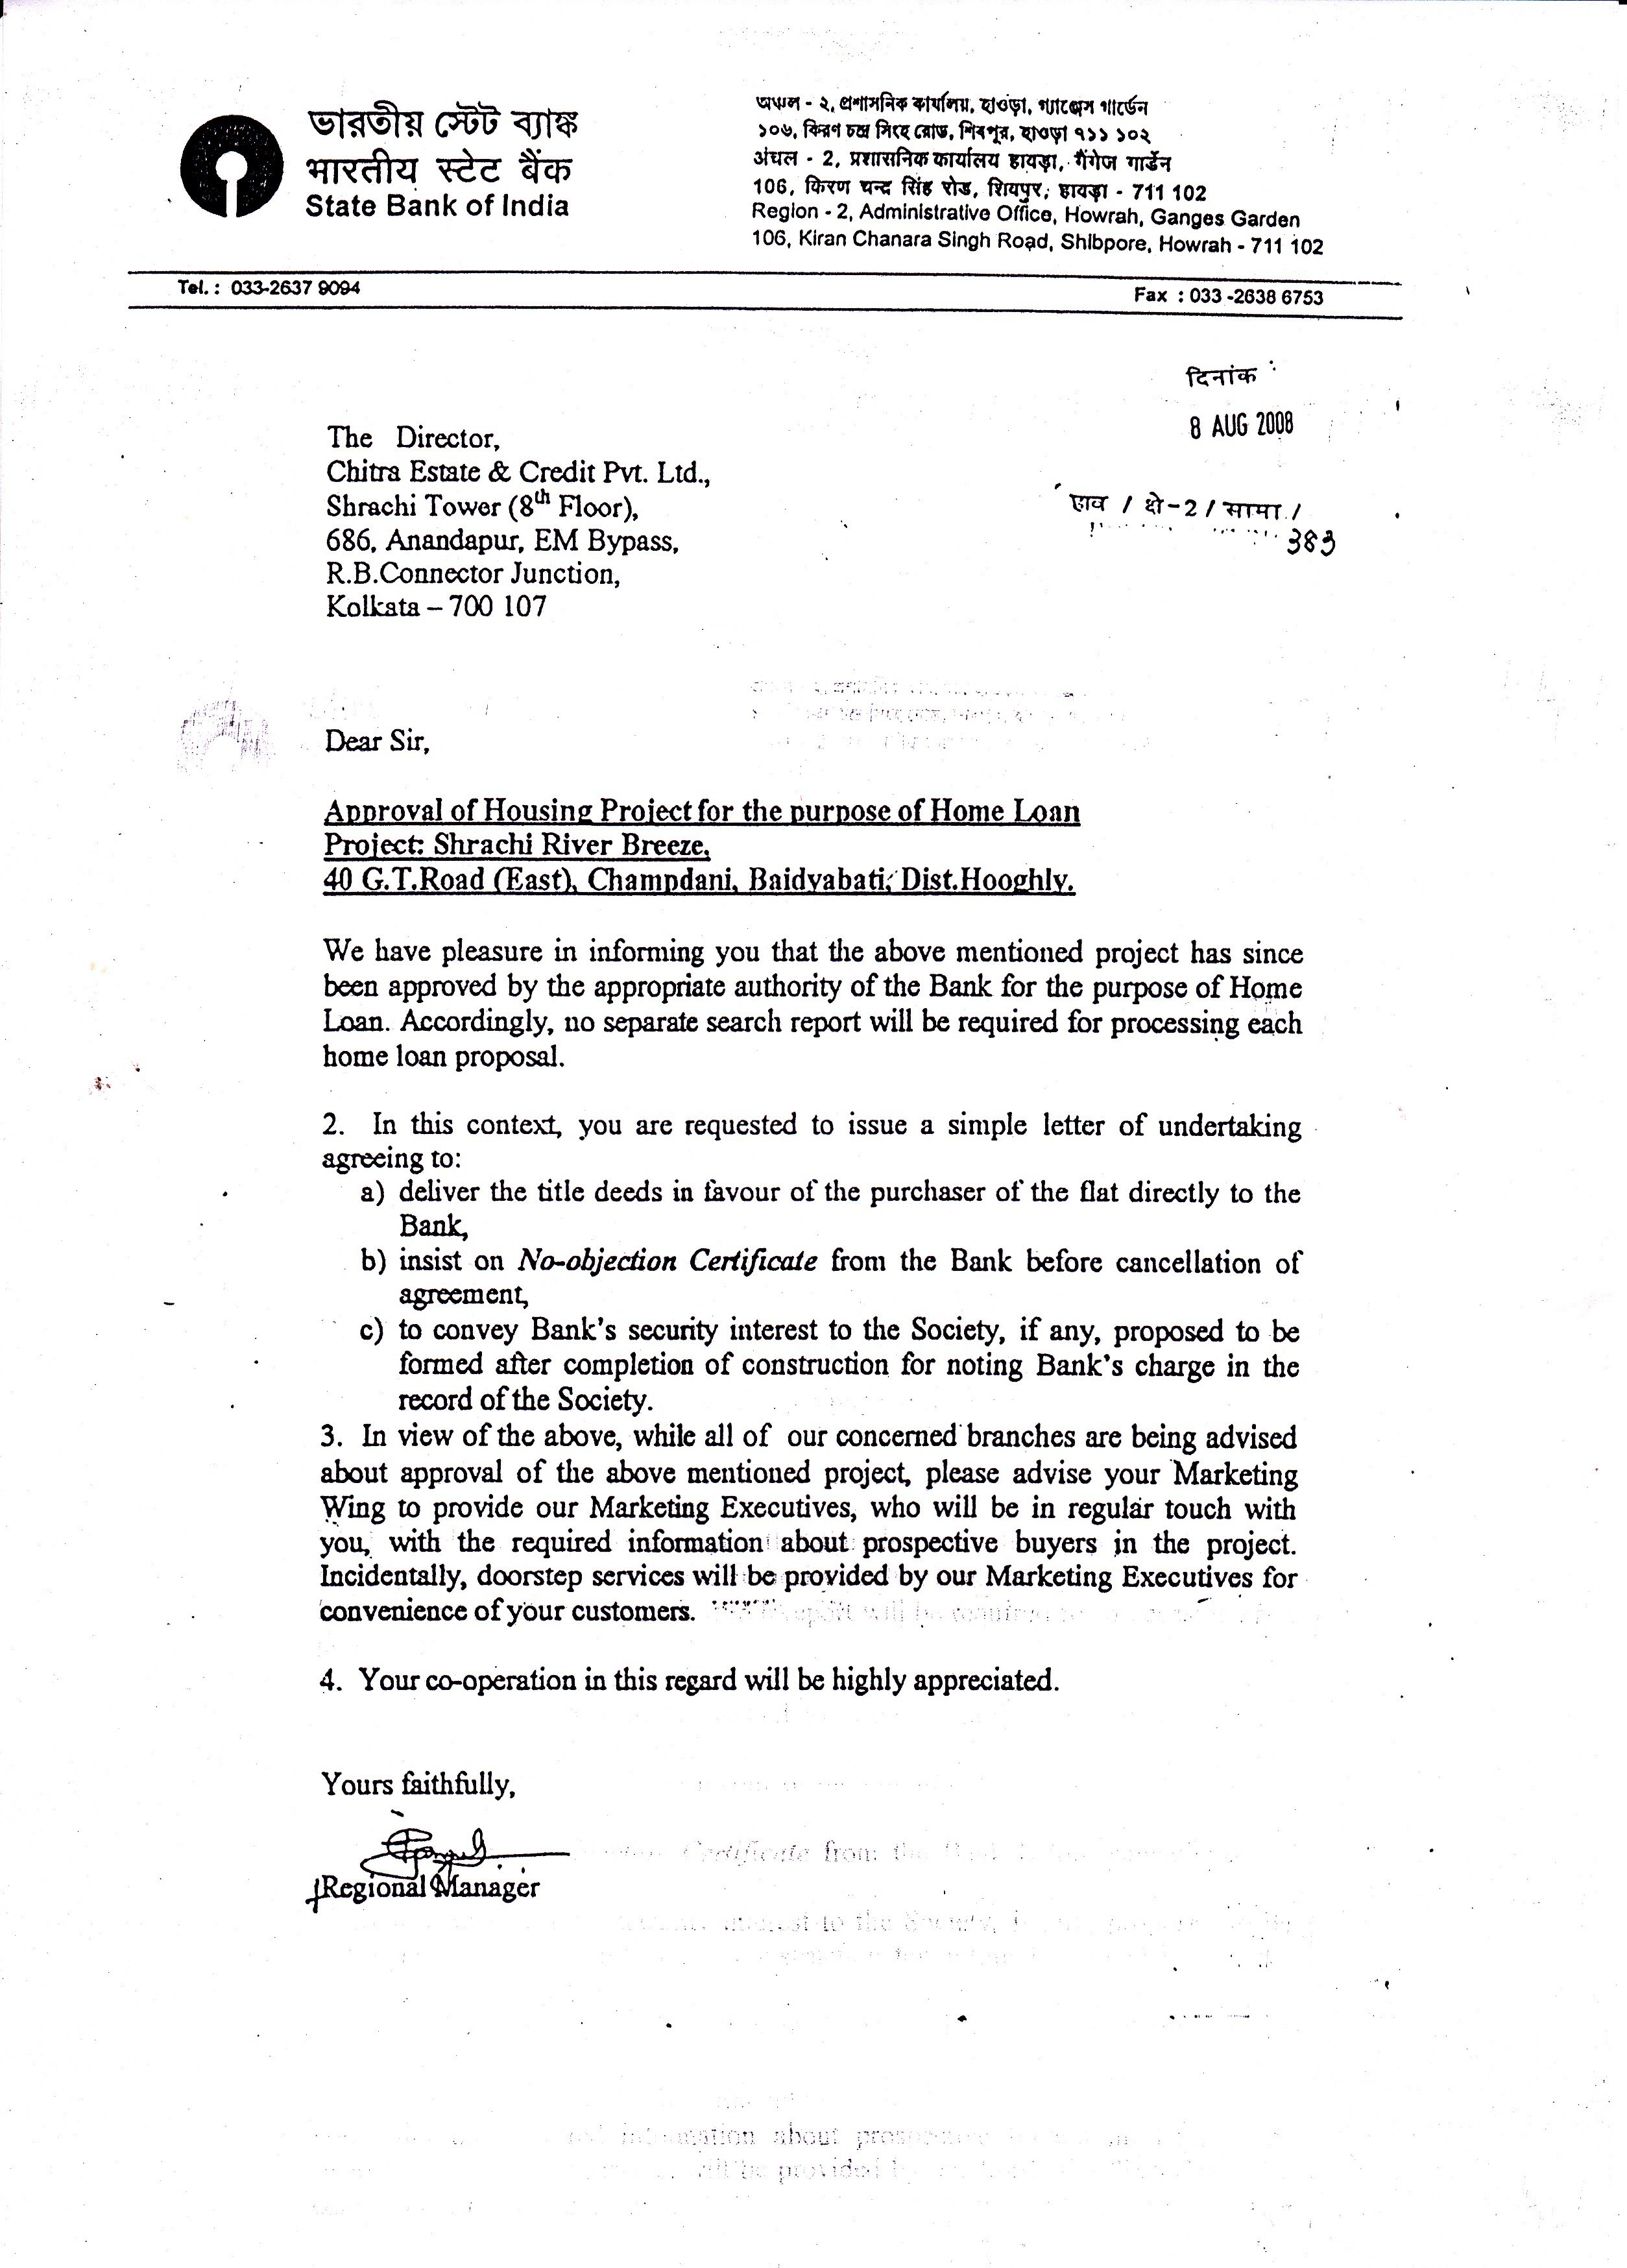 Personal Loan Letter Template - Letter format for Personal Loan Requesting New Ideas Write A